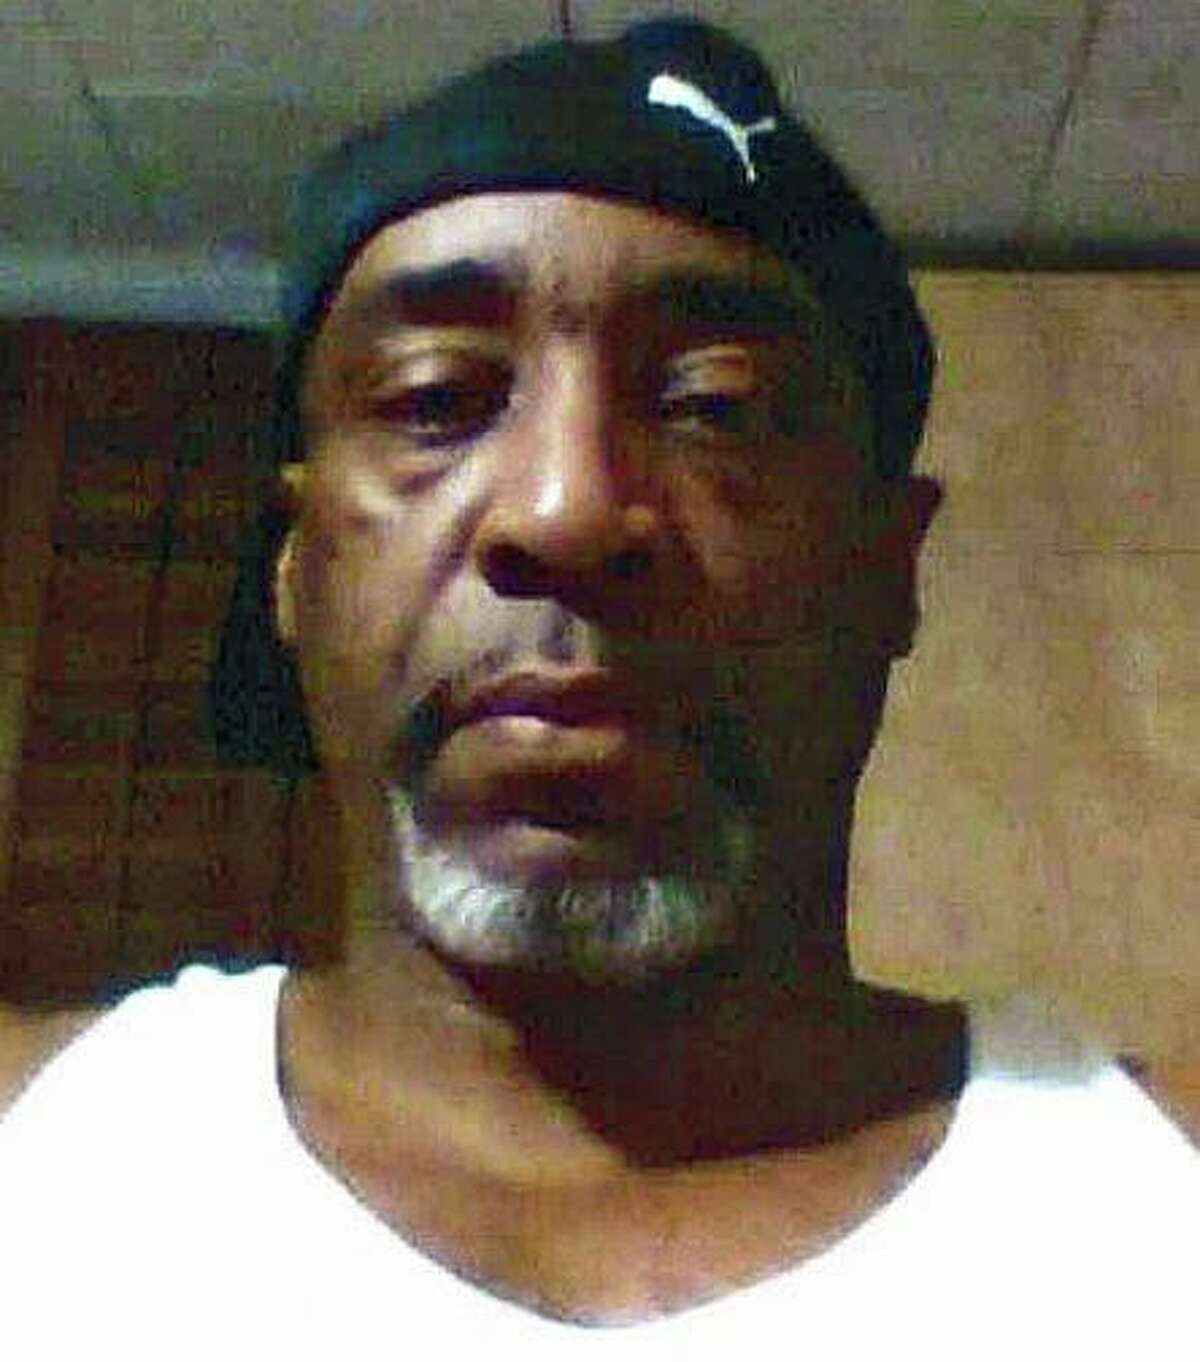 Christopher Harris. 49, was last seen at 160 Judson Place in Bridgeport at around 9 a.m. on Dec. 12, 2020, police said.